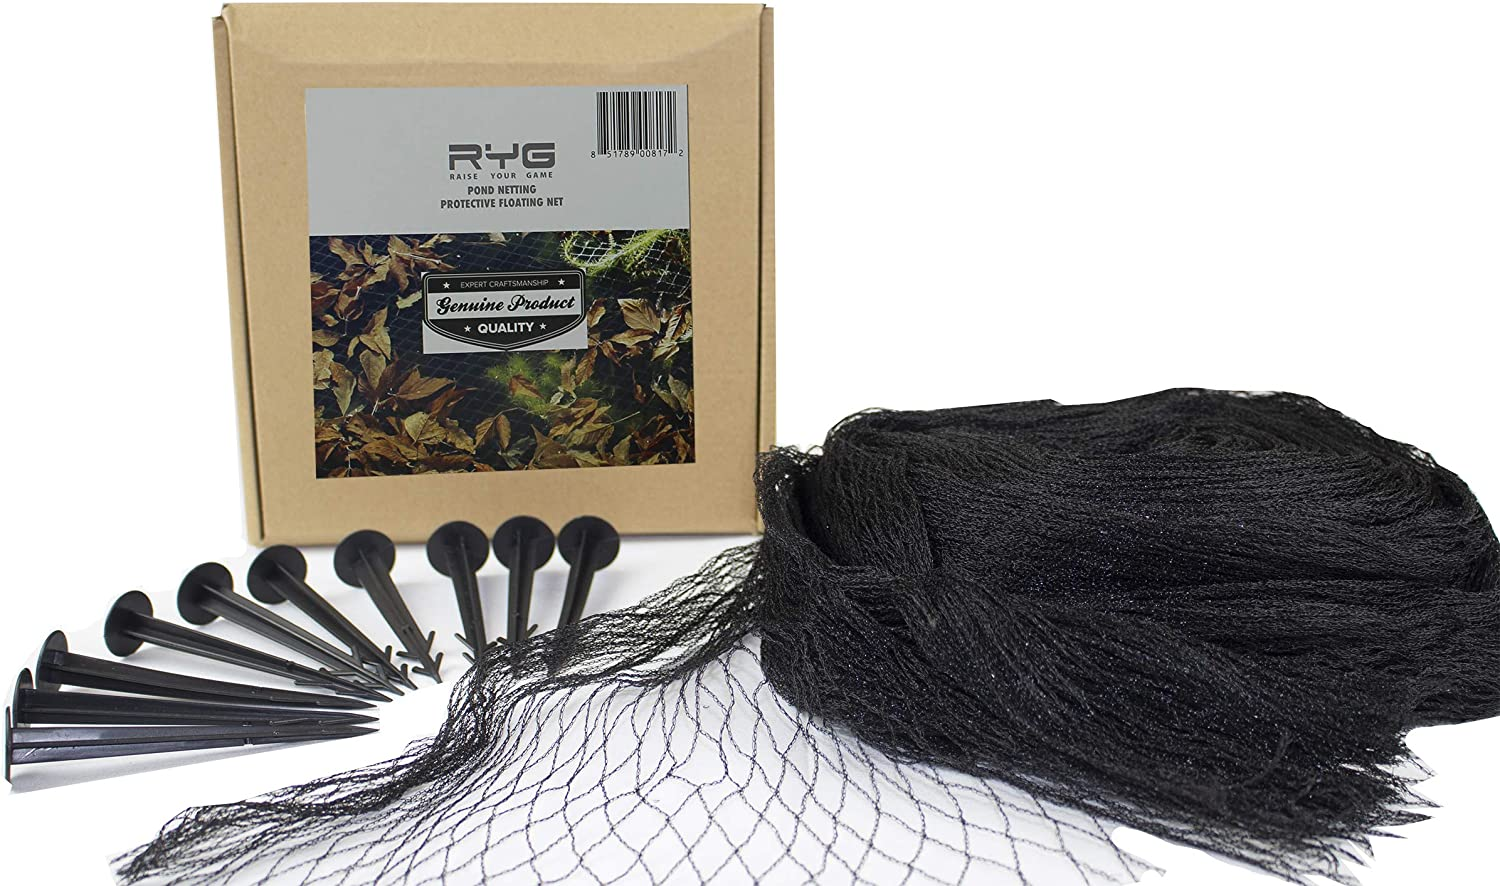 RYG Koi Pond Netting Kit 25x25 Feet, Heavy Duty Mesh Pool Net for Easy Cleaning, Protective Cover for Koi Fish, Skimmer Net Screen for Falling Leaves and Debris, Placement Stakes Included